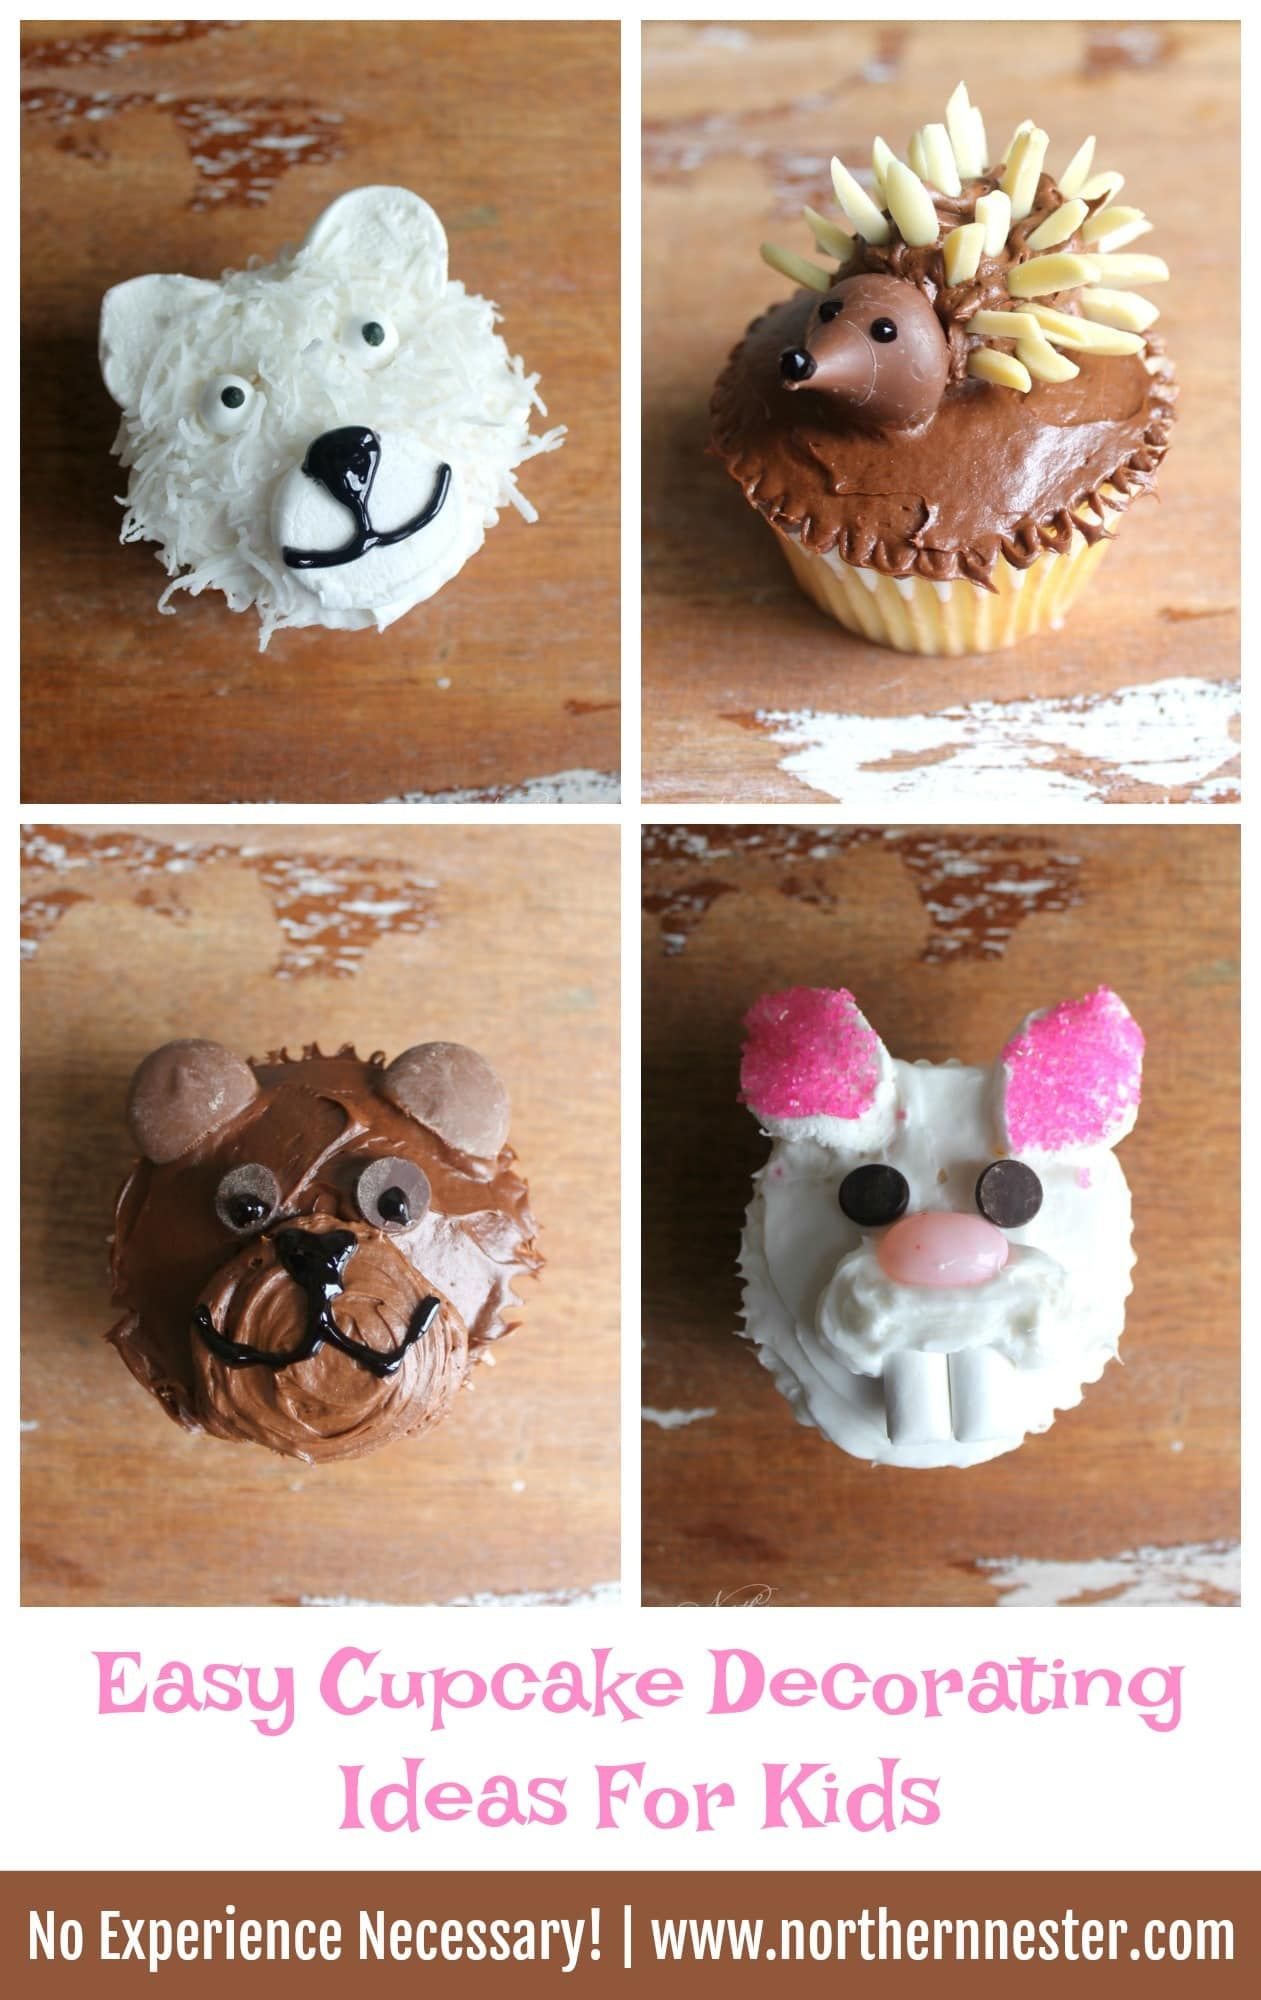 Easy Cupcake Decorating Ideas For Kids With Images Easy